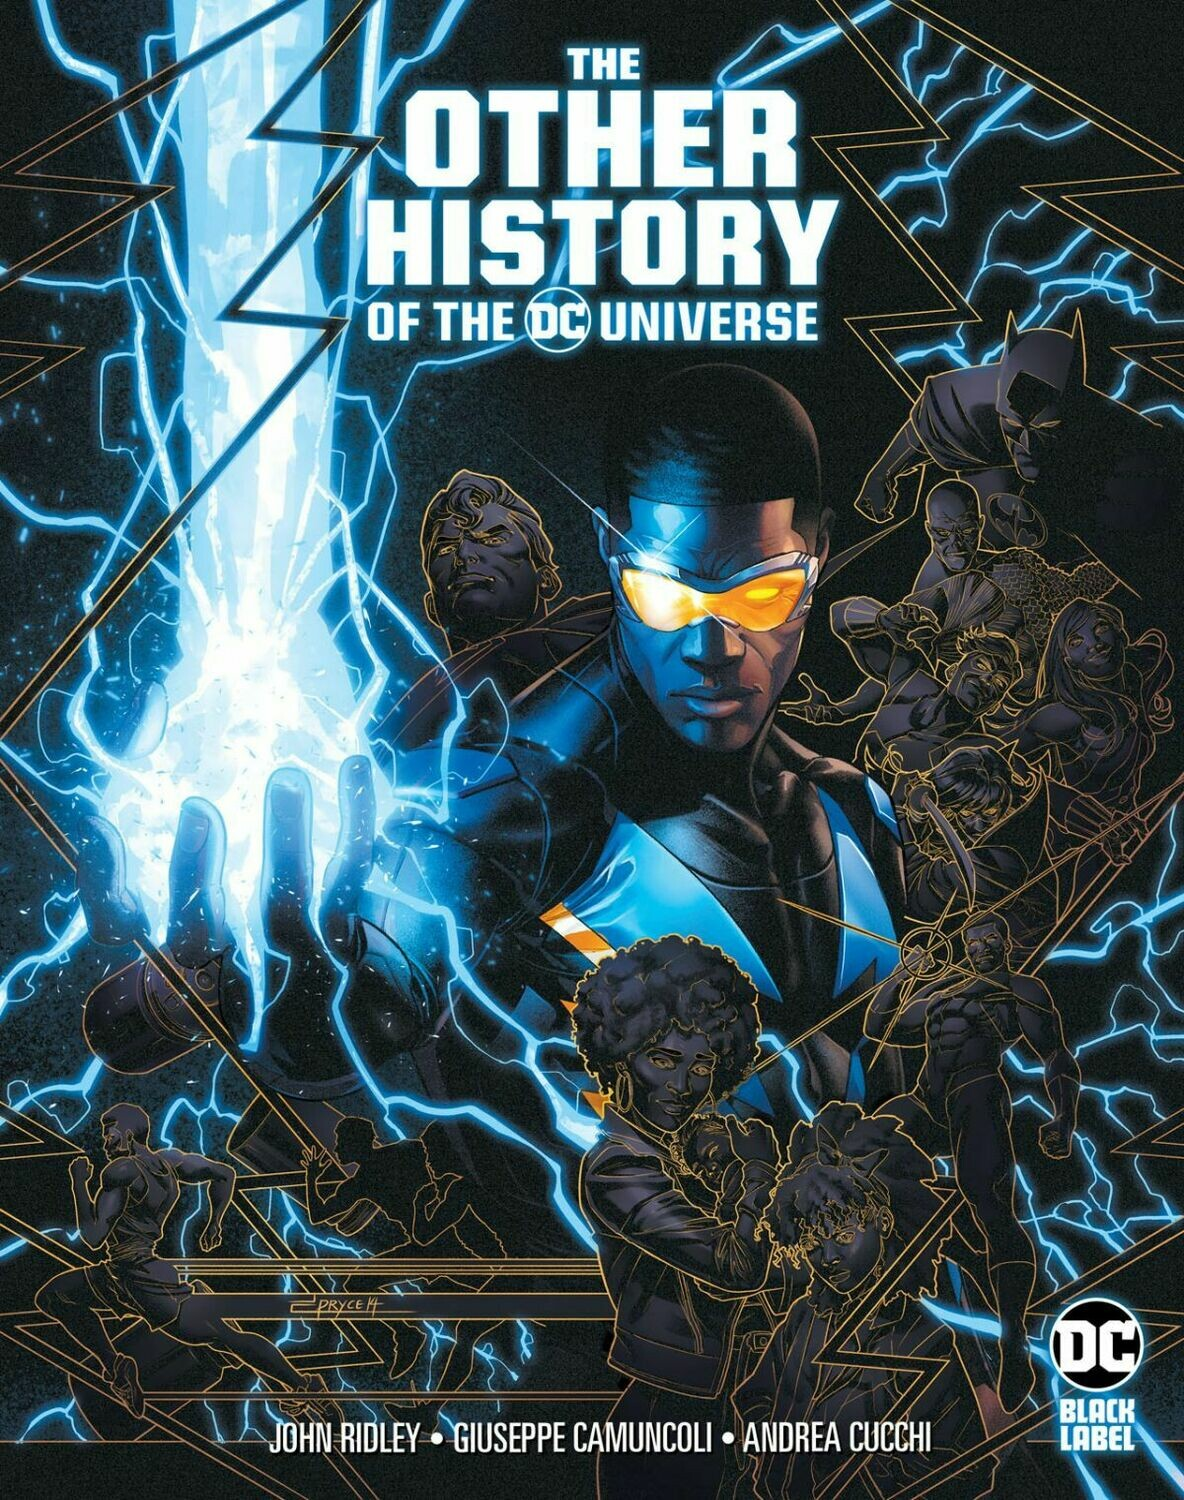 OTHER HISTORY OF THE DC UNIVERSE #1 (OF 5) VARIANT EDITION